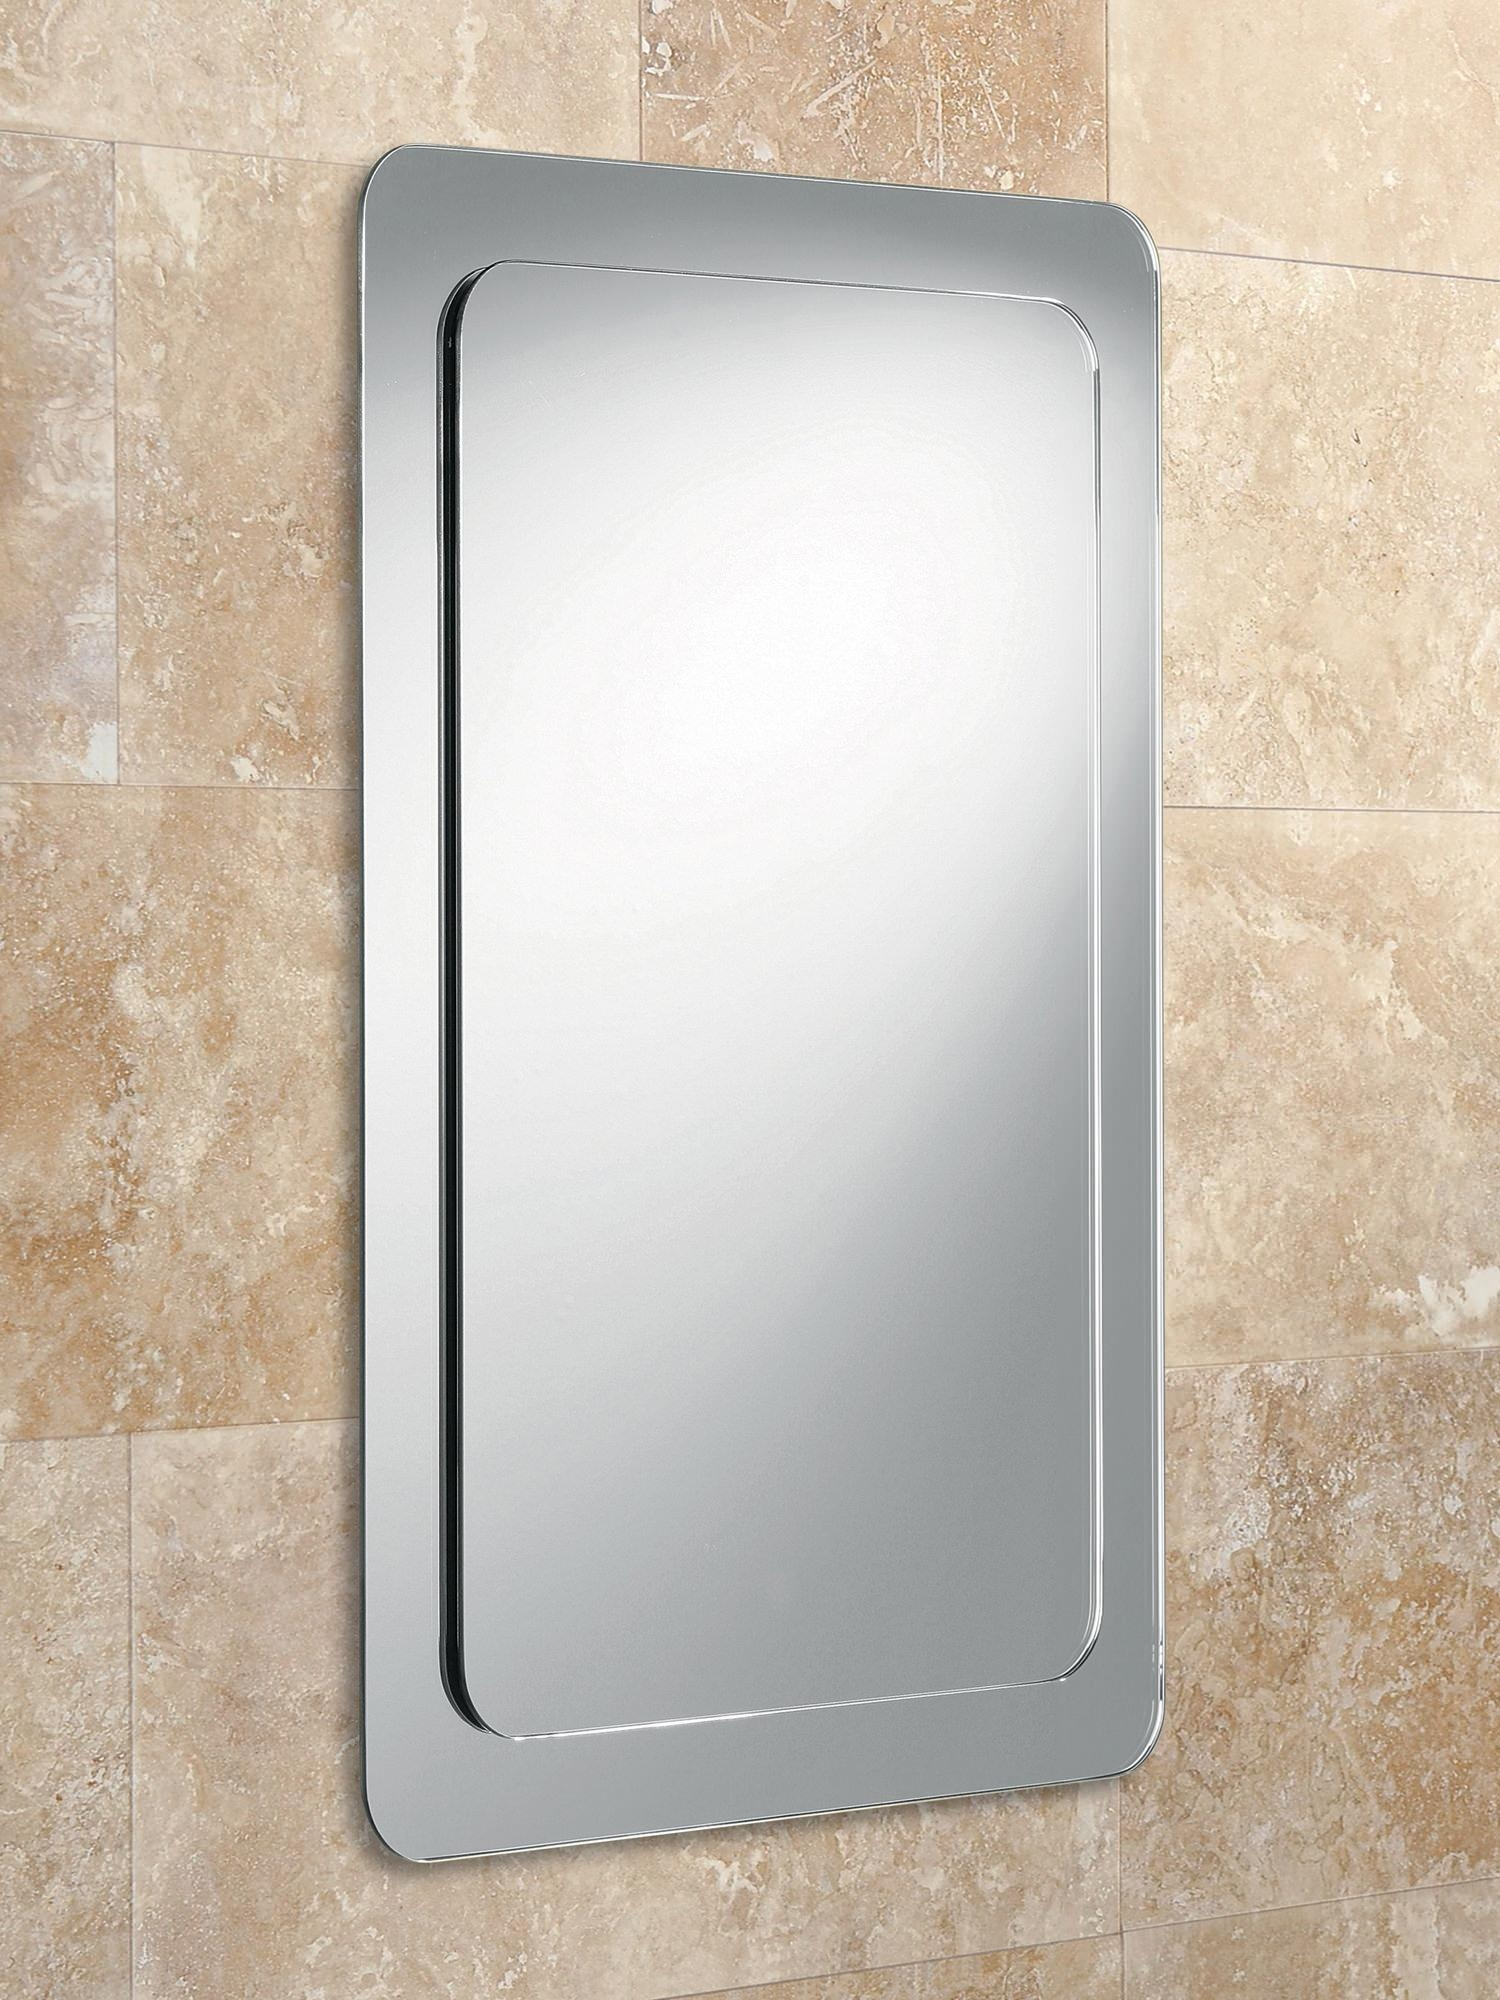 Hib Almo Bevelled Mirror On Mirror With Rounded Corners | 63210795 Inside Bevelled Mirror (View 13 of 20)